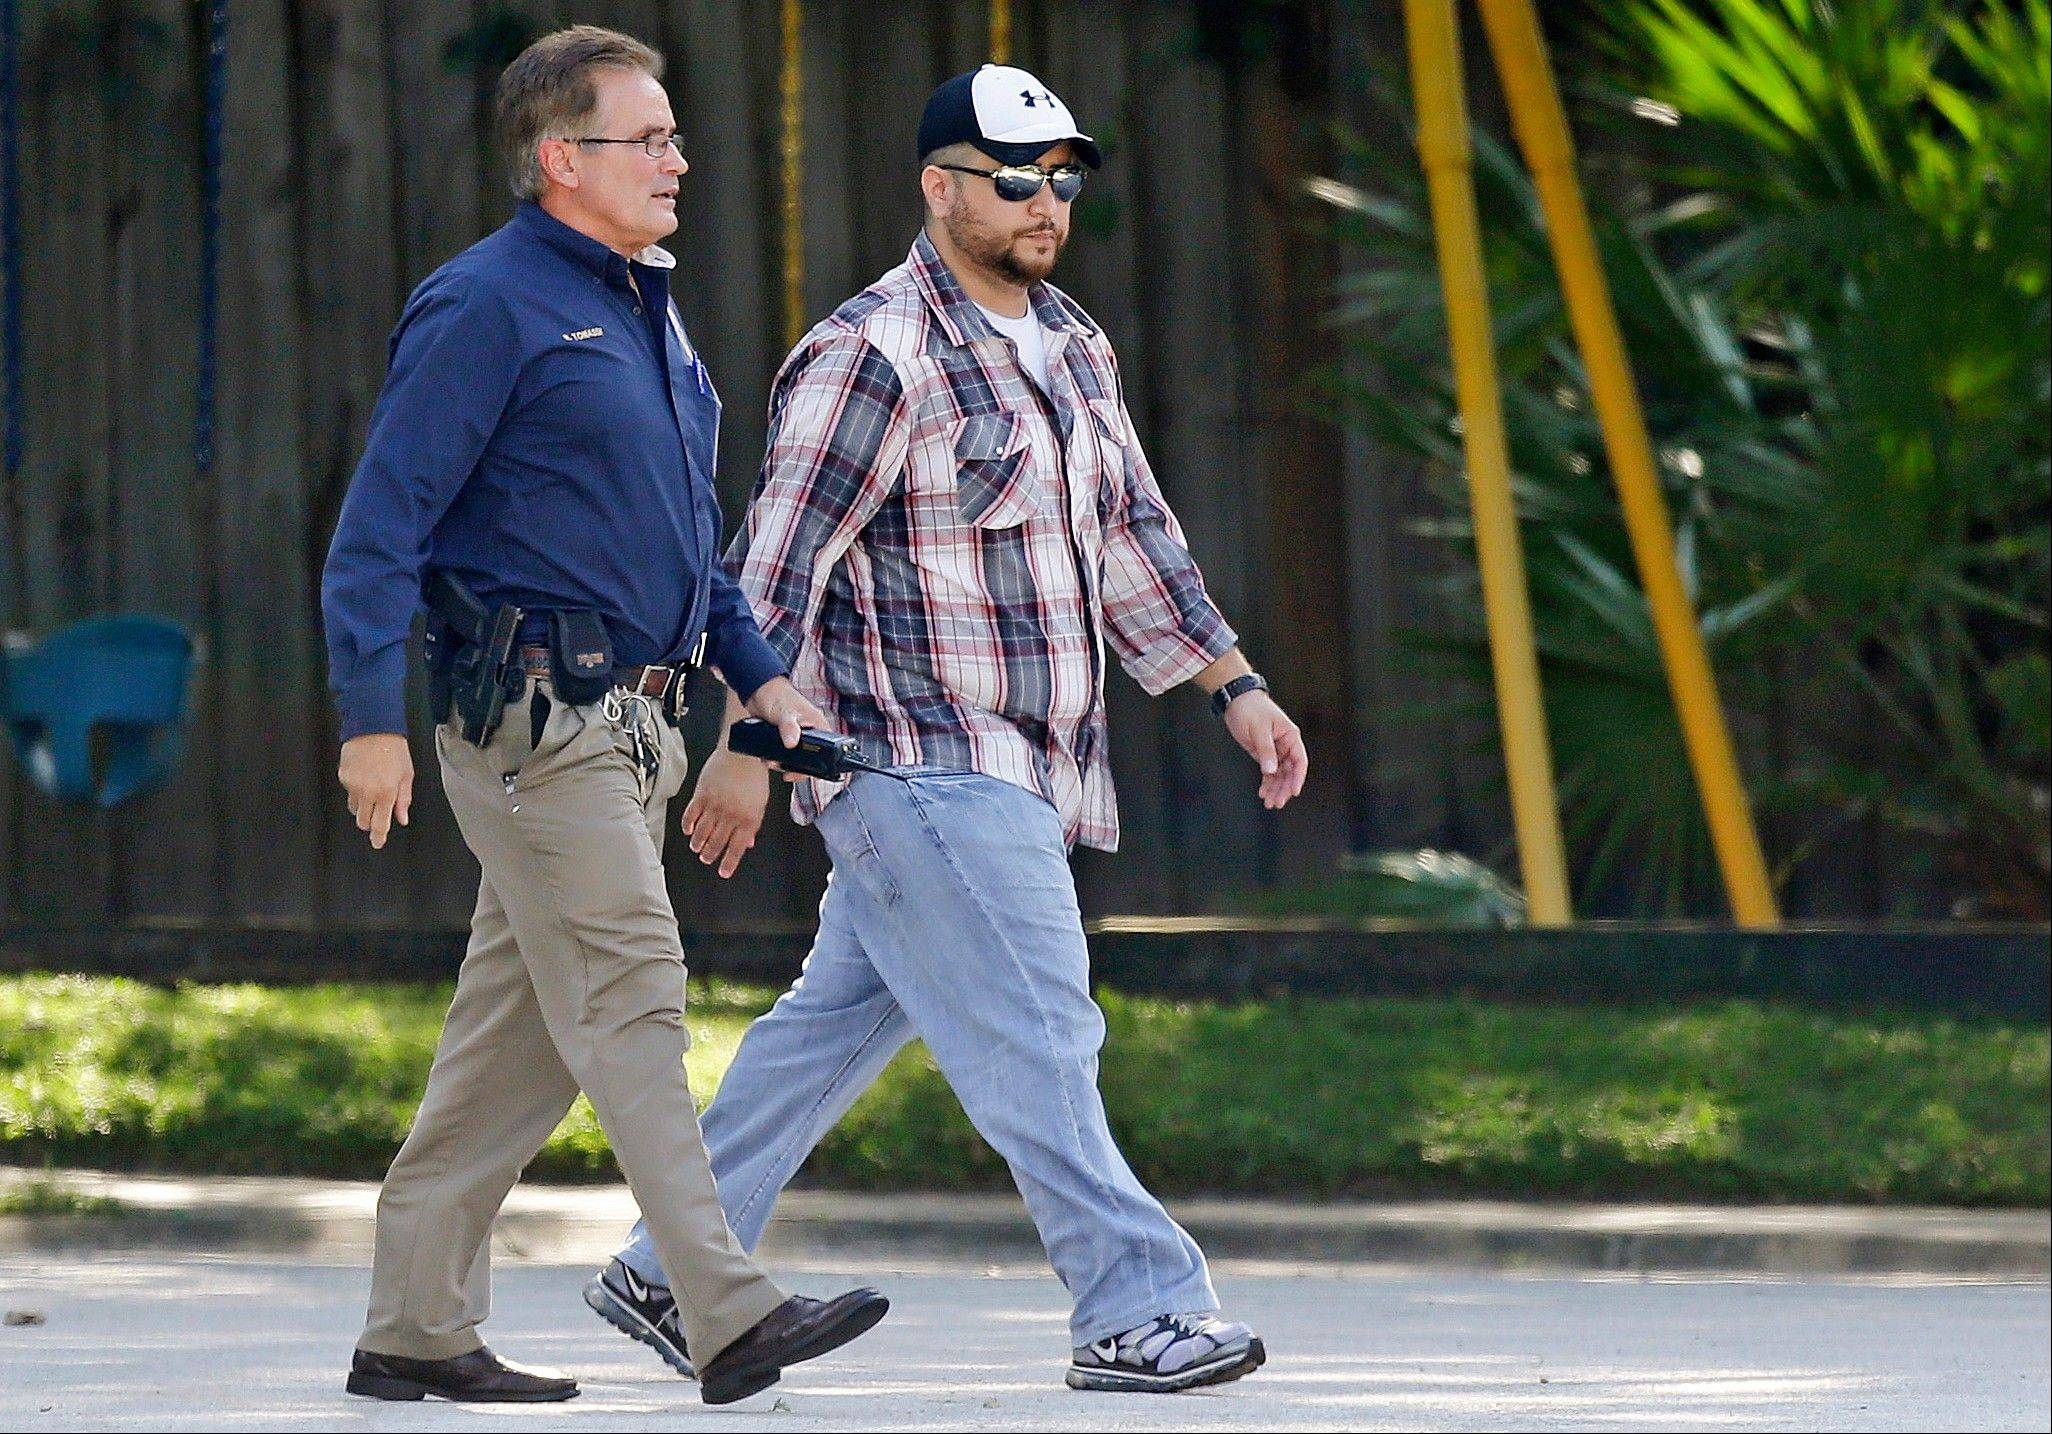 Zimmerman, right, is escorted to a home by a Lake Mary police officer, in Lake Mary, Fla., after a domestic incident in the neighborhood where Zimmerman and his wife Shellie had lived during his murder trial.